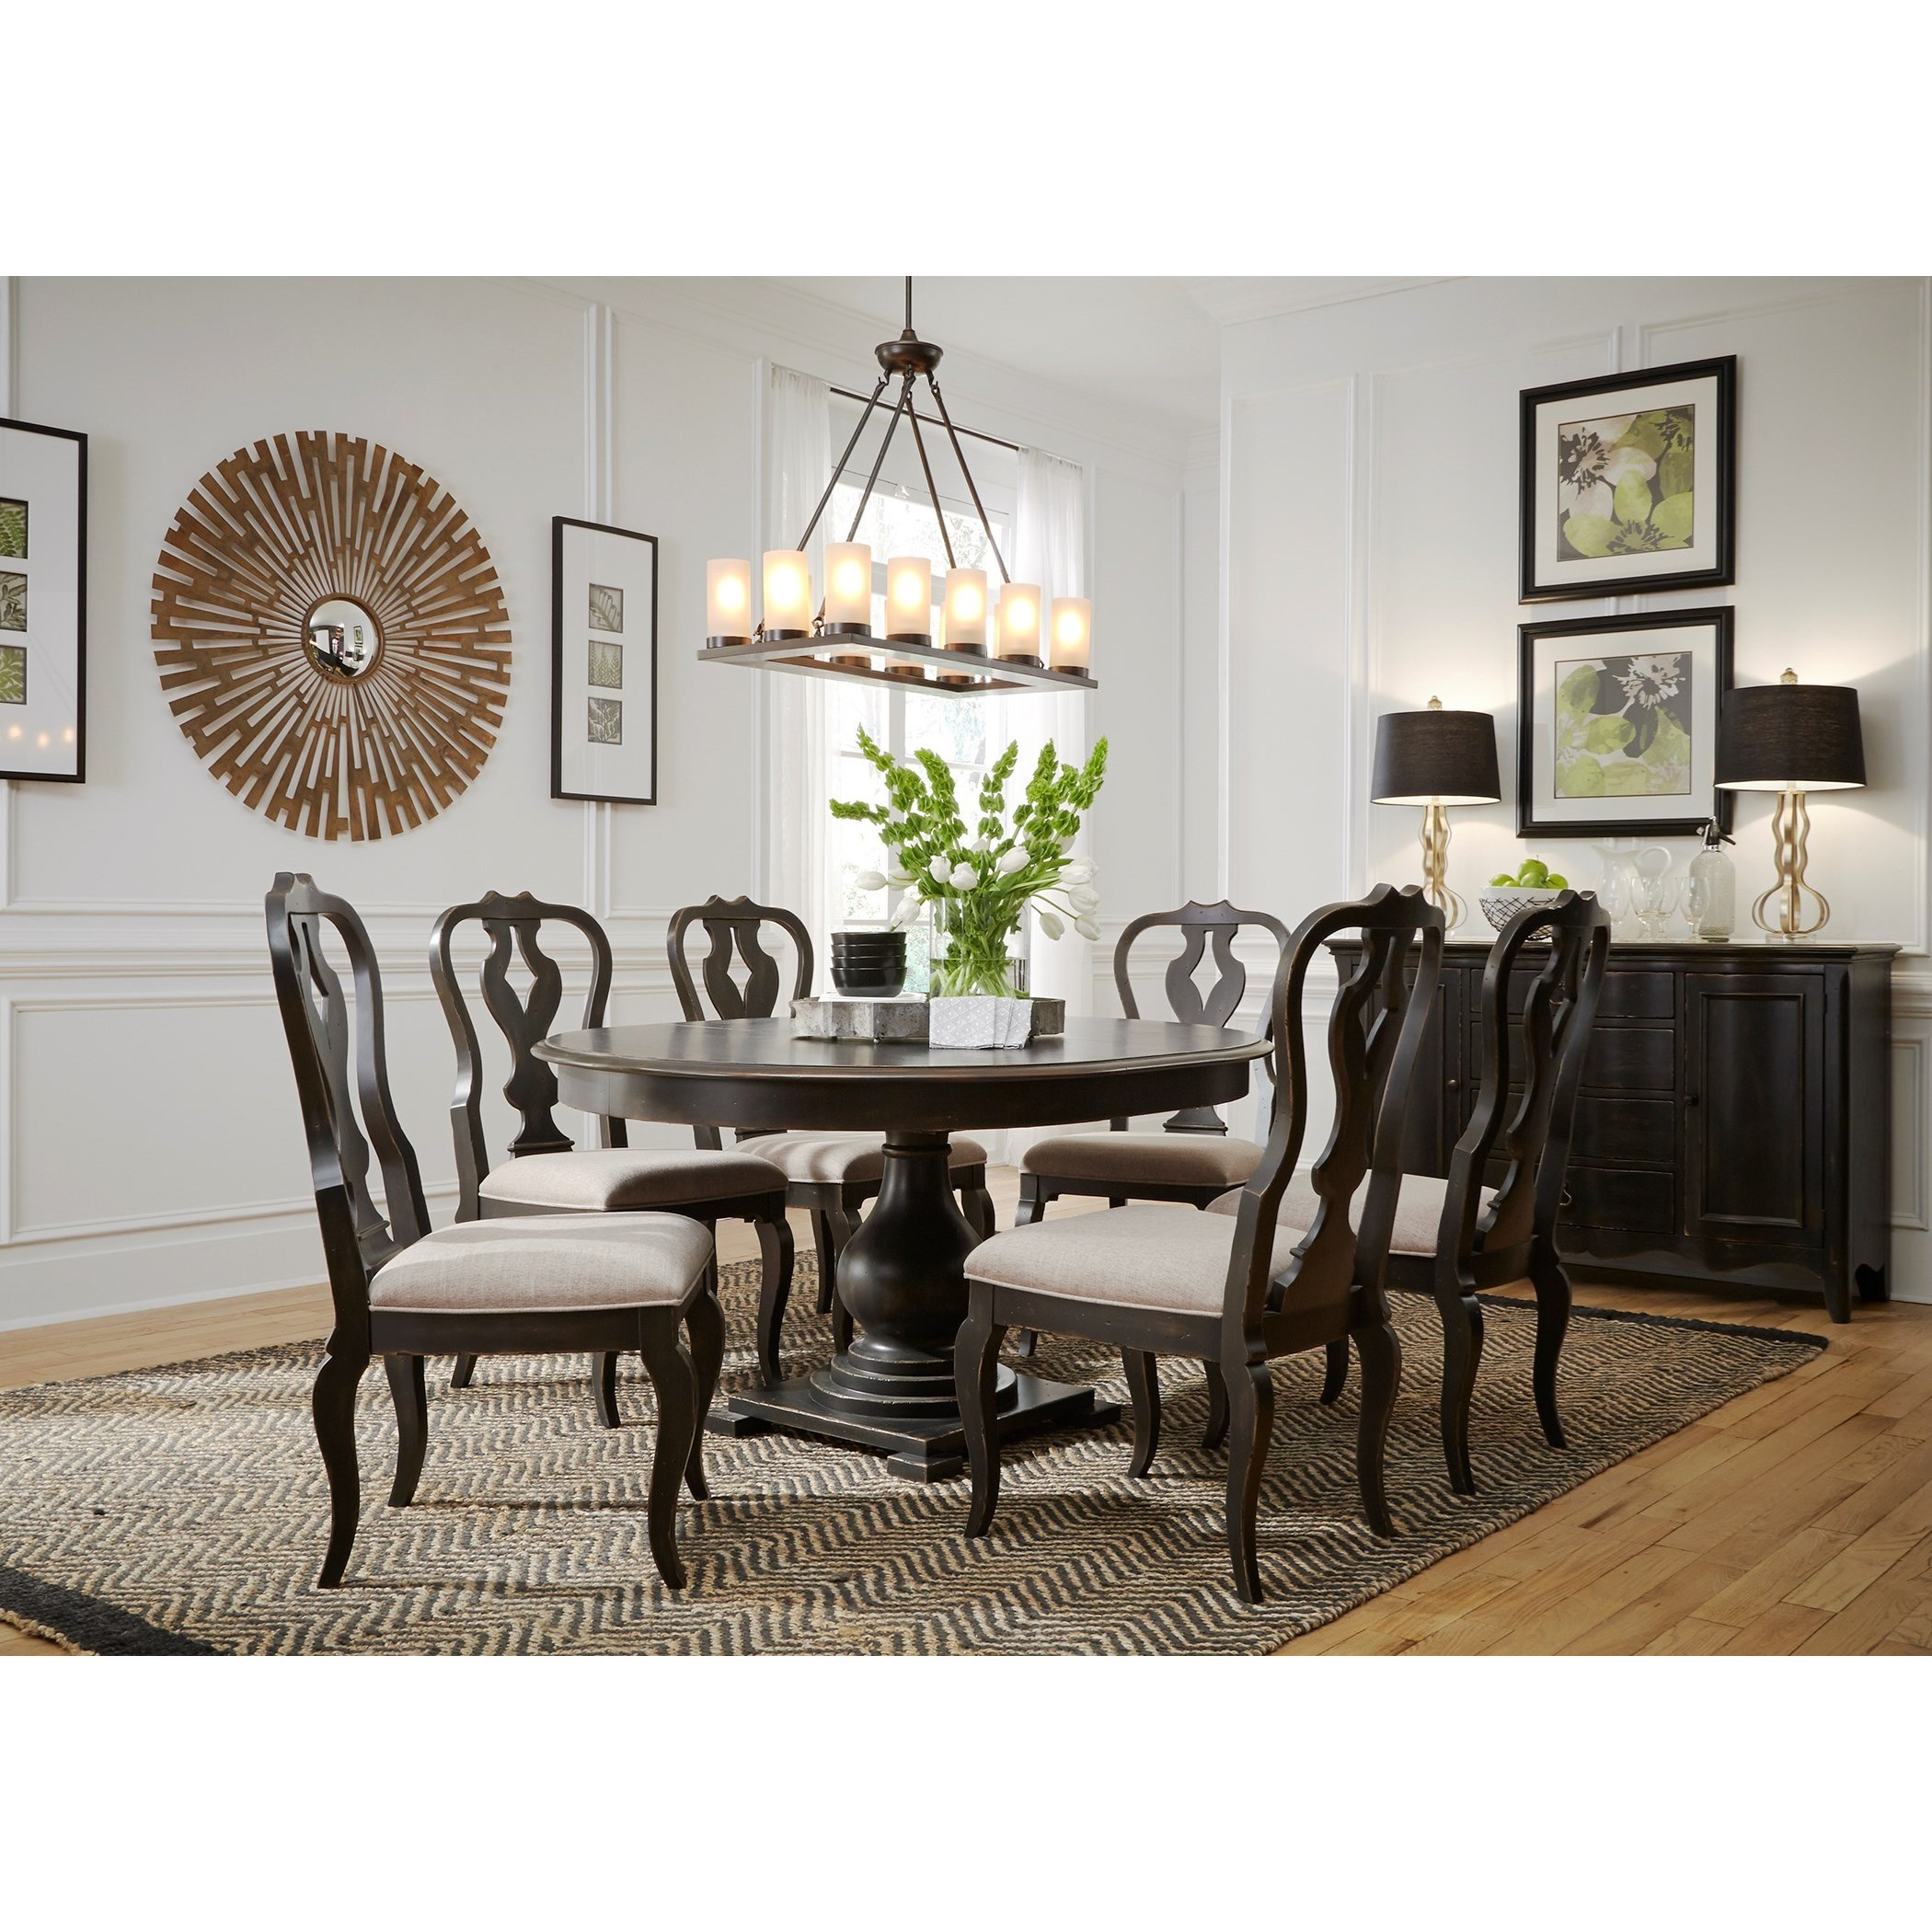 Chesapeake Dining Room Group by Liberty Furniture at Standard Furniture